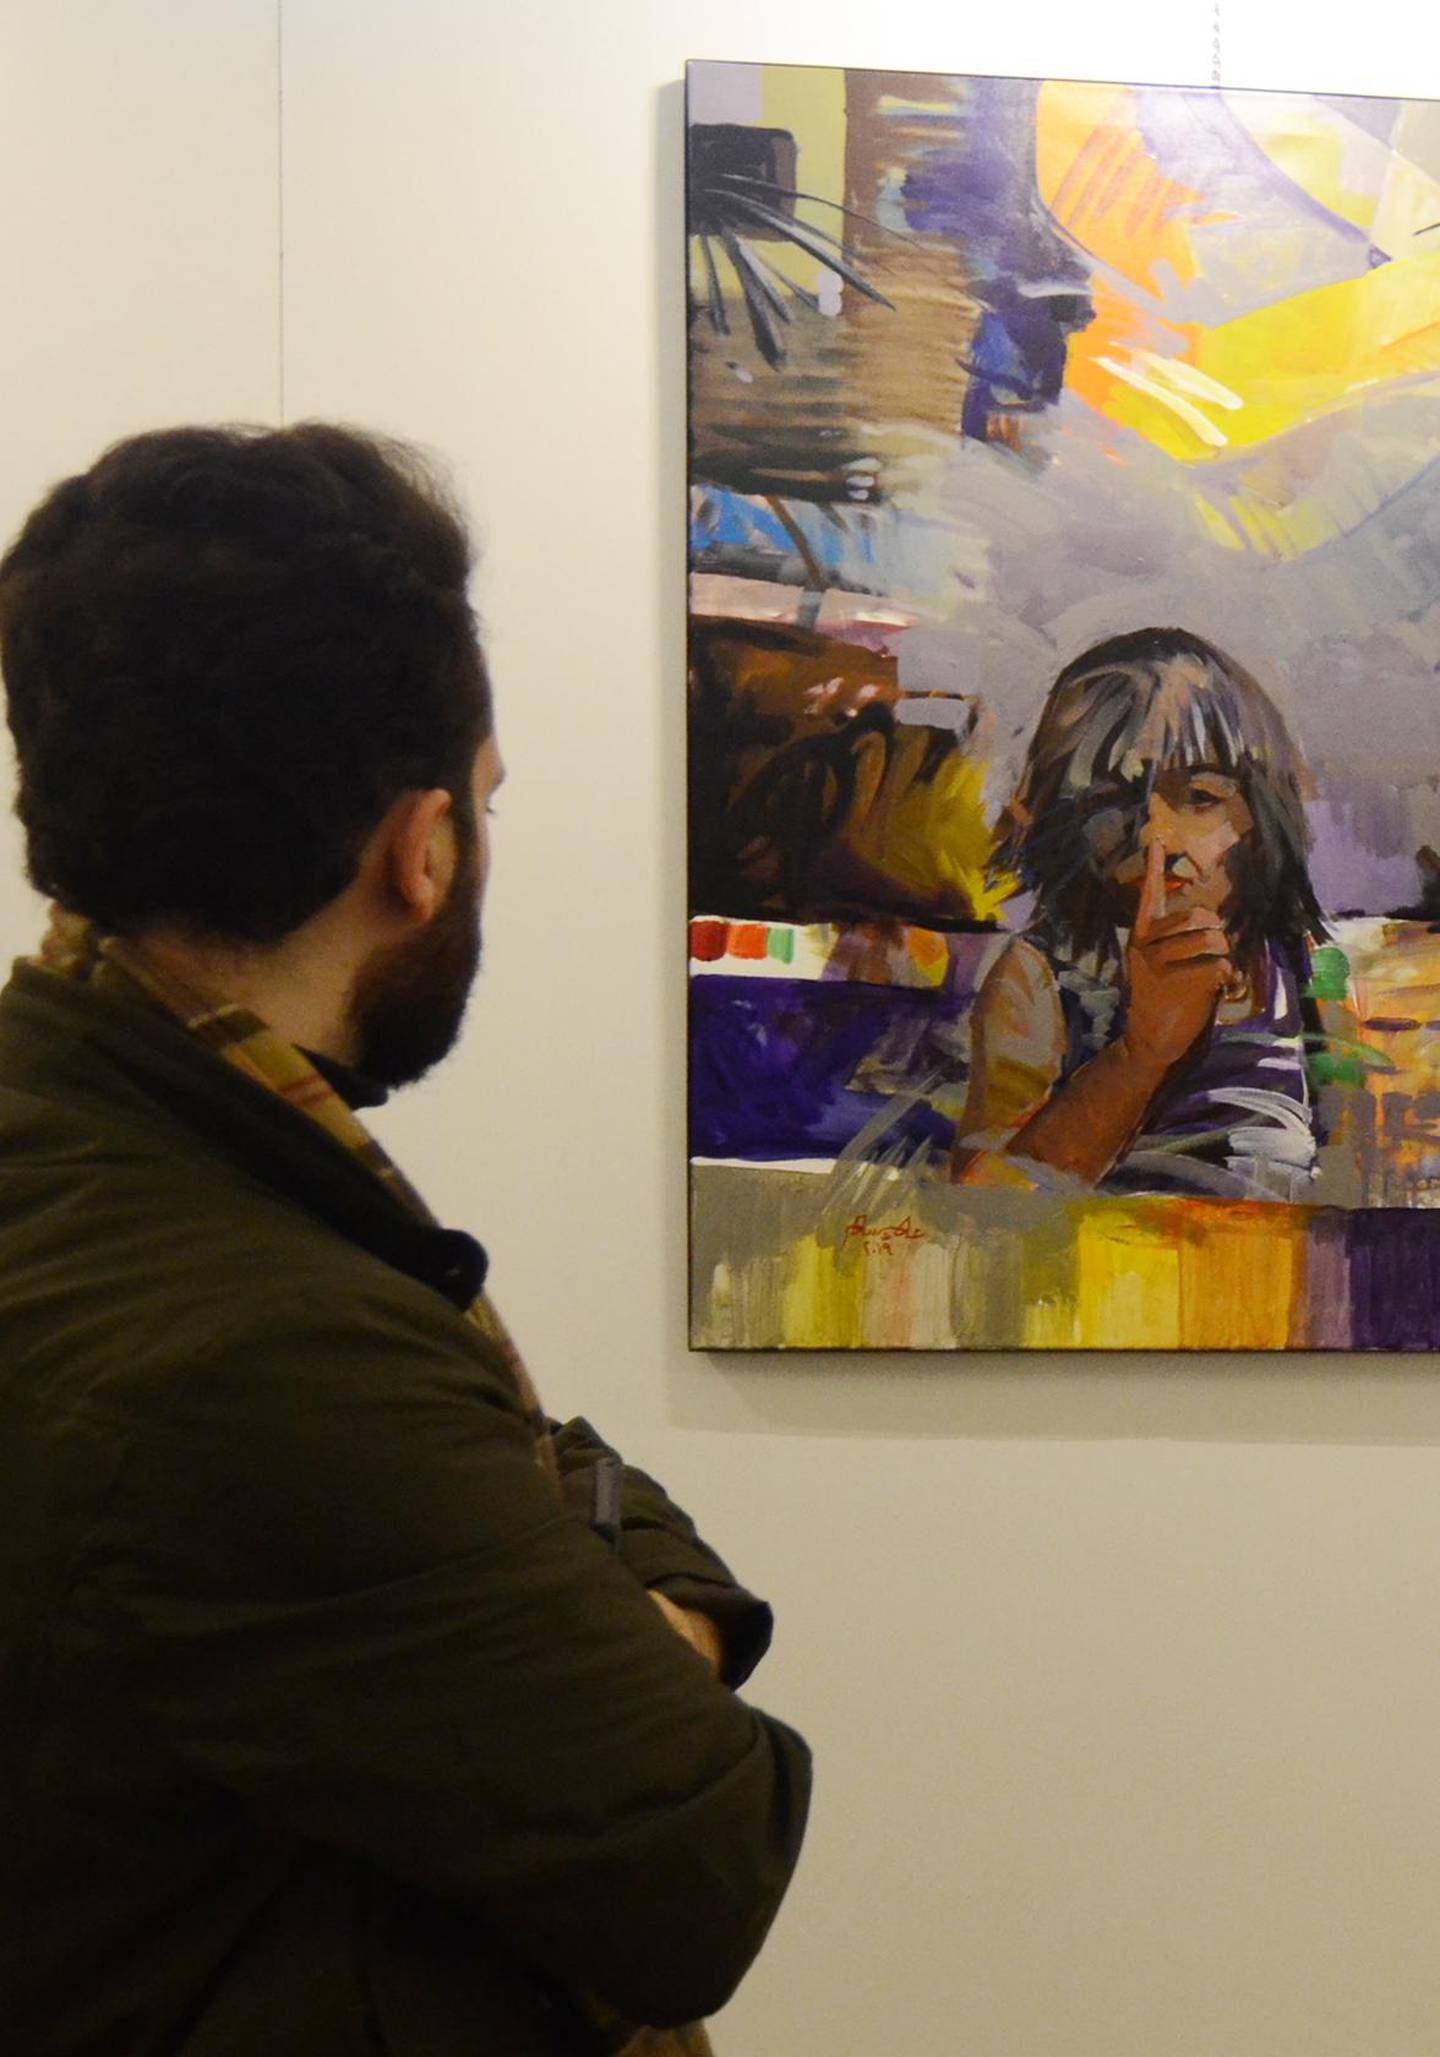 An Iraqi man looks on January 29, 2019 at a painting displayed at a contemporary art exhibition hall in the museum of the northern Iraqi city of Mosul, which served as the Islamic State (IS) group's brutal seat of power for three years, before Iraqi troops recaptured it in 2017. Mosul's celebrated museum has not recovered since IS jihadists ravaged its ancient treasures several years ago, but part of the complex reopened today to showcase more modern art. For the first time since IS overran the Iraqi city in 2014, visitors on could wander the grandiose royal reception hall, which formed part of the museum. / AFP / Zaid AL-OBEIDI